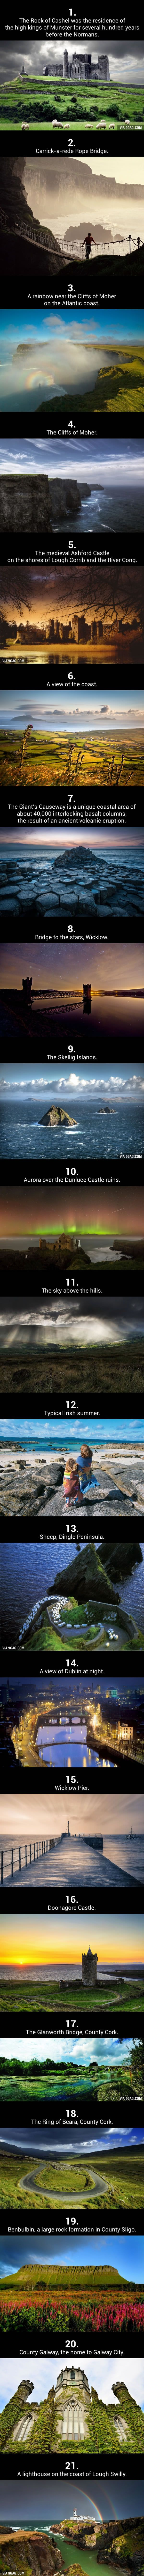 21 Reasons You Definitely Need To Visit Ireland